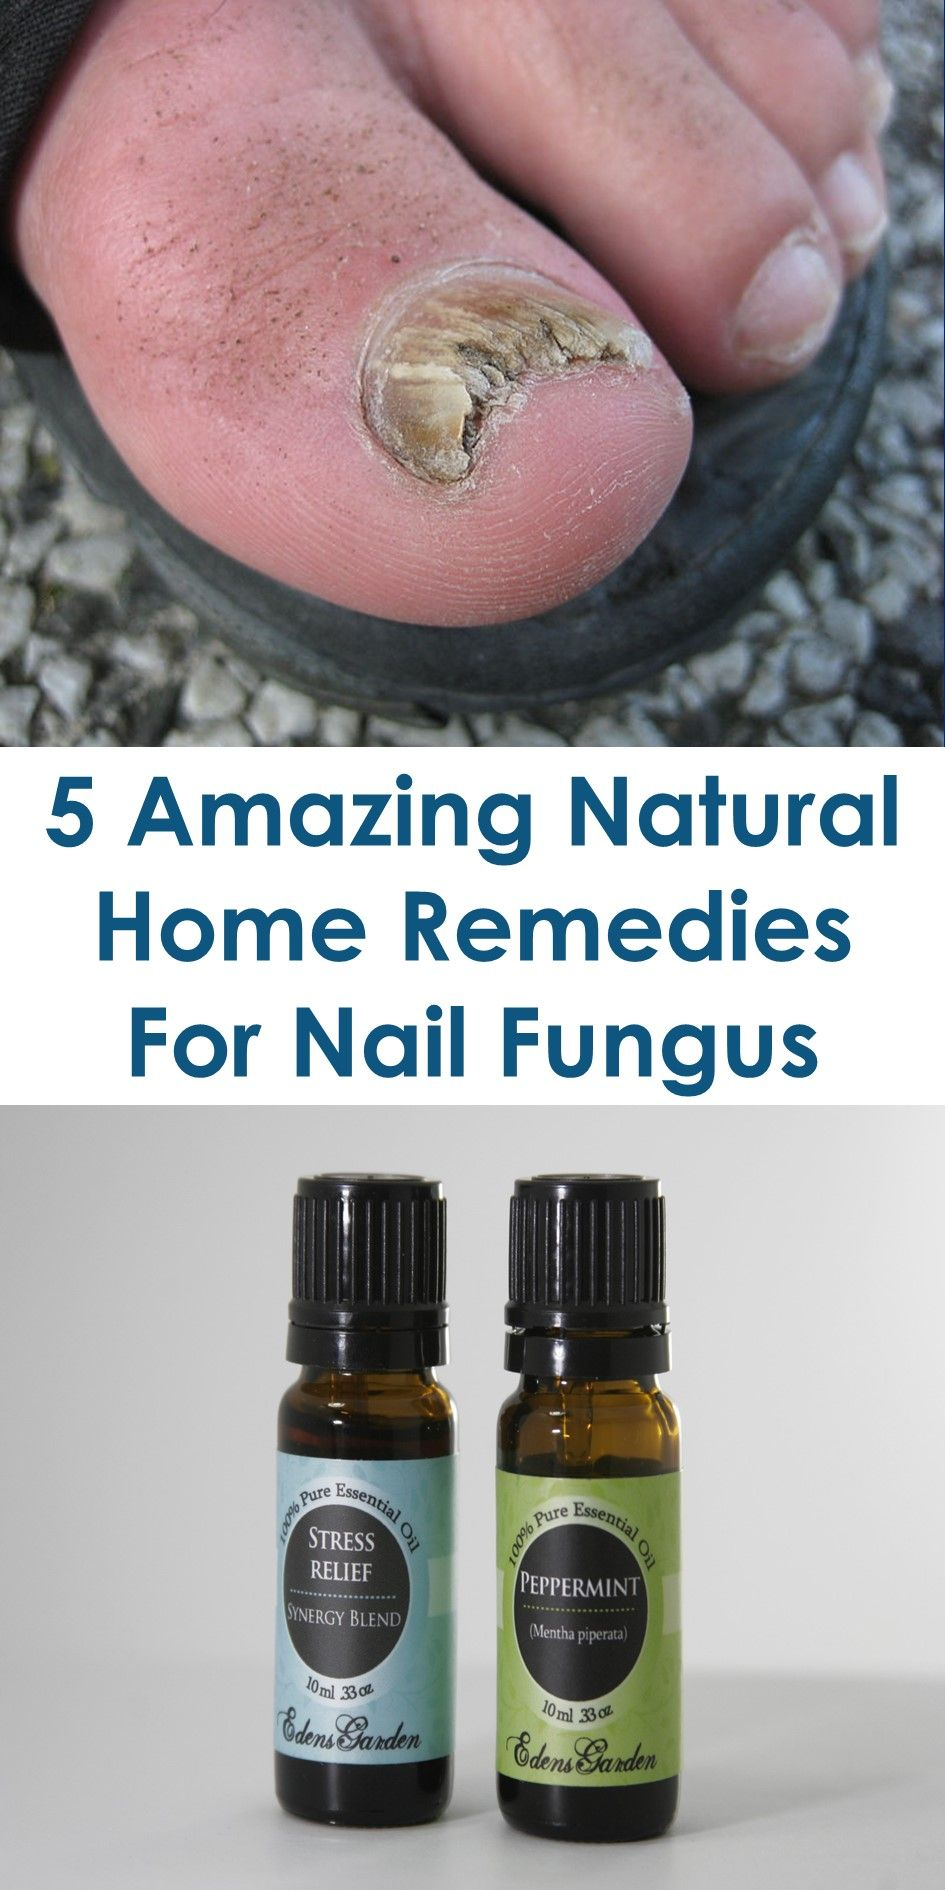 18 Natural Home Remedies And Treatments For Nail Fungus | Remedies ...